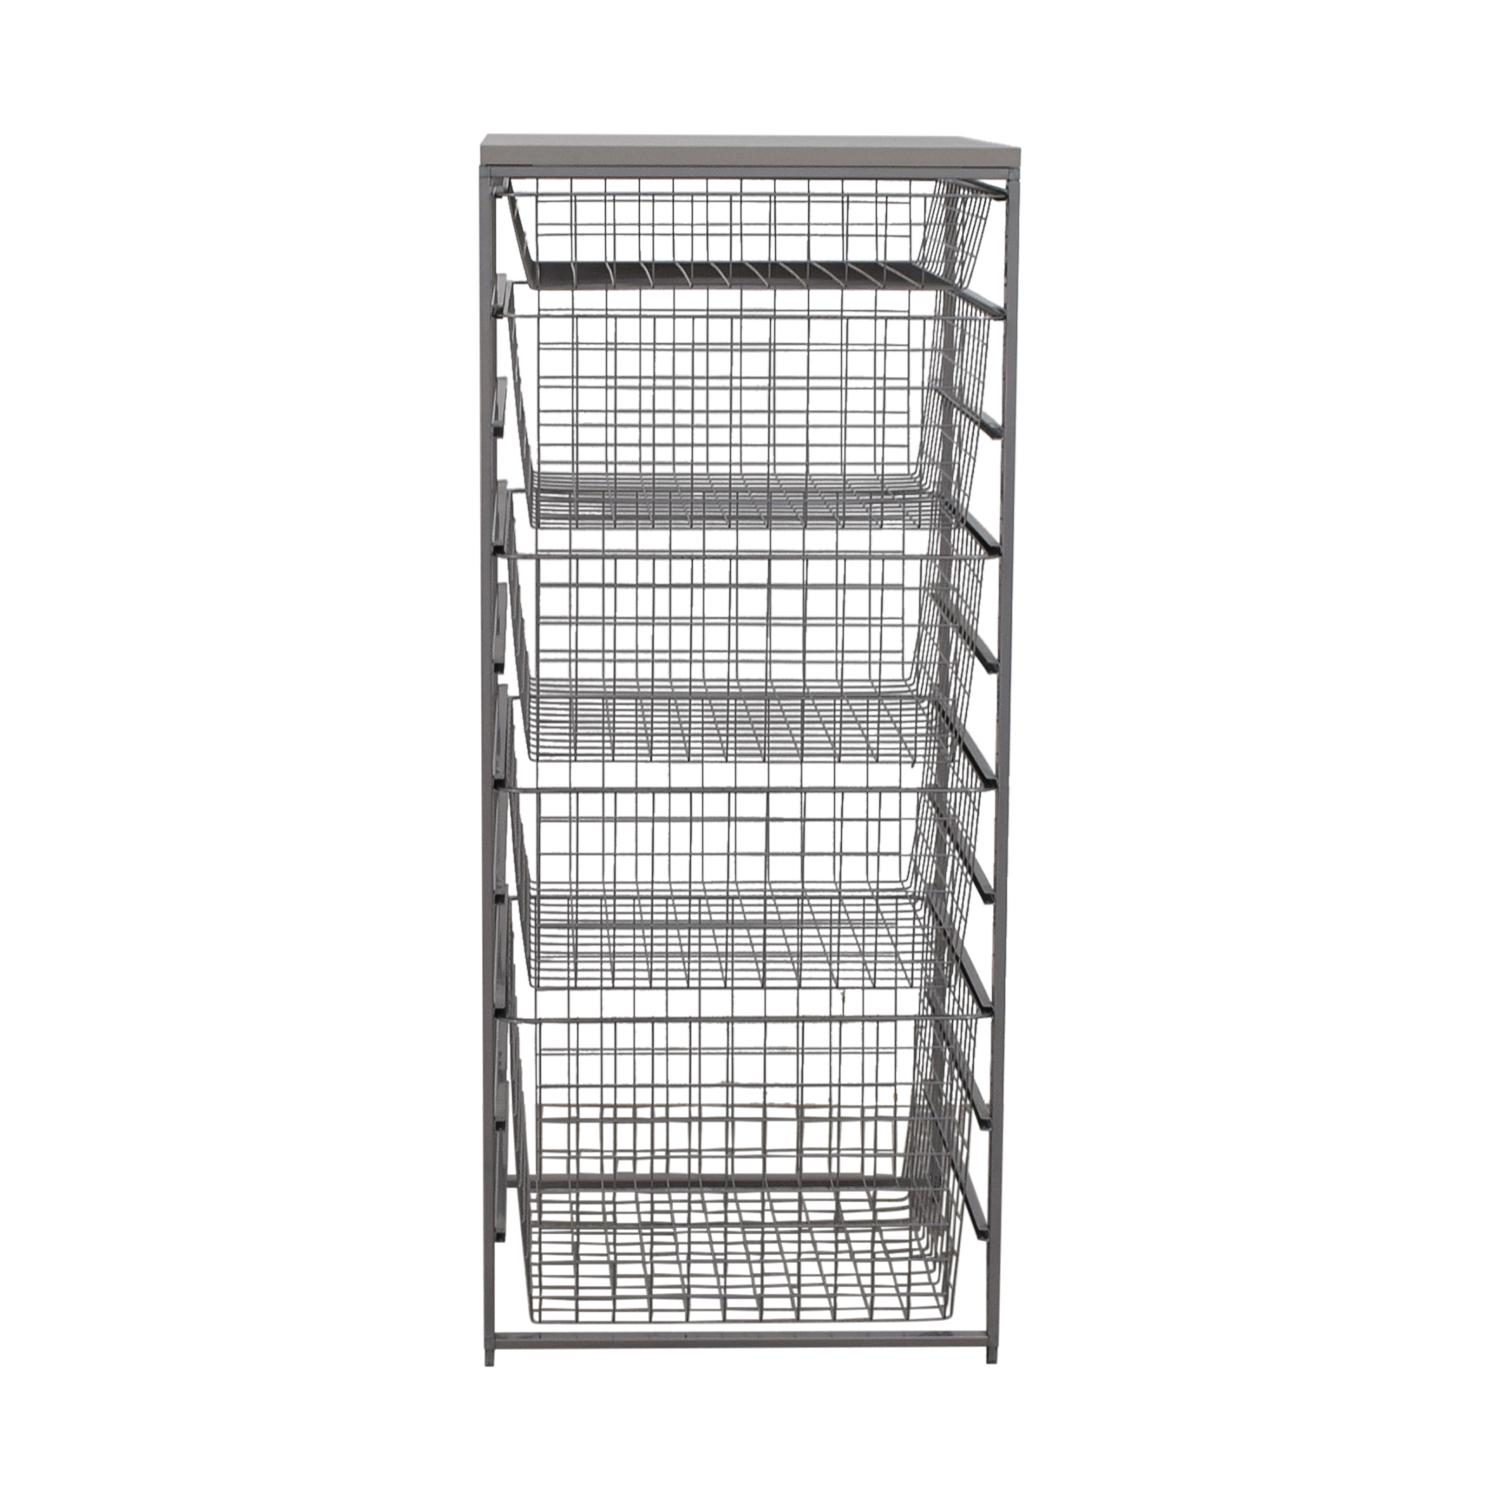 Elfa Elfa Platinum Metal Storage Rack nyc